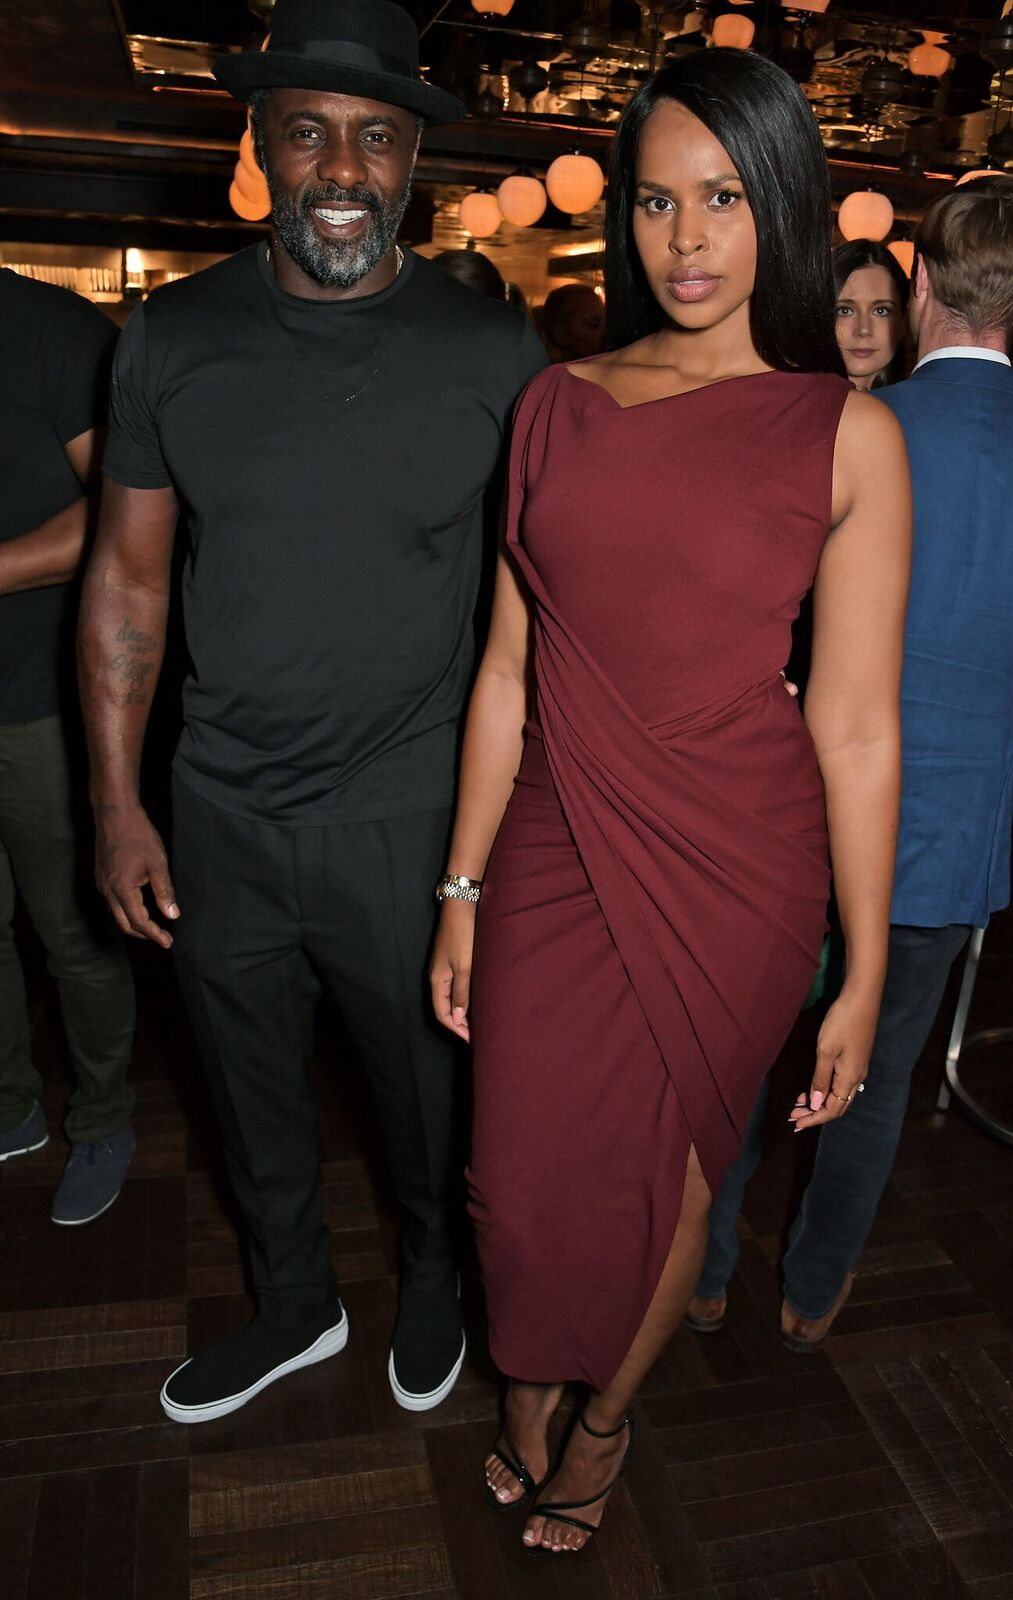 Idris Elba and Sabrina Dhowre Elba at the official launch party of Lucky Cat by Gordon Ramsay on September 2, 2019, in London, England | Photo: David M. Benett/Dave Benett/Getty Images